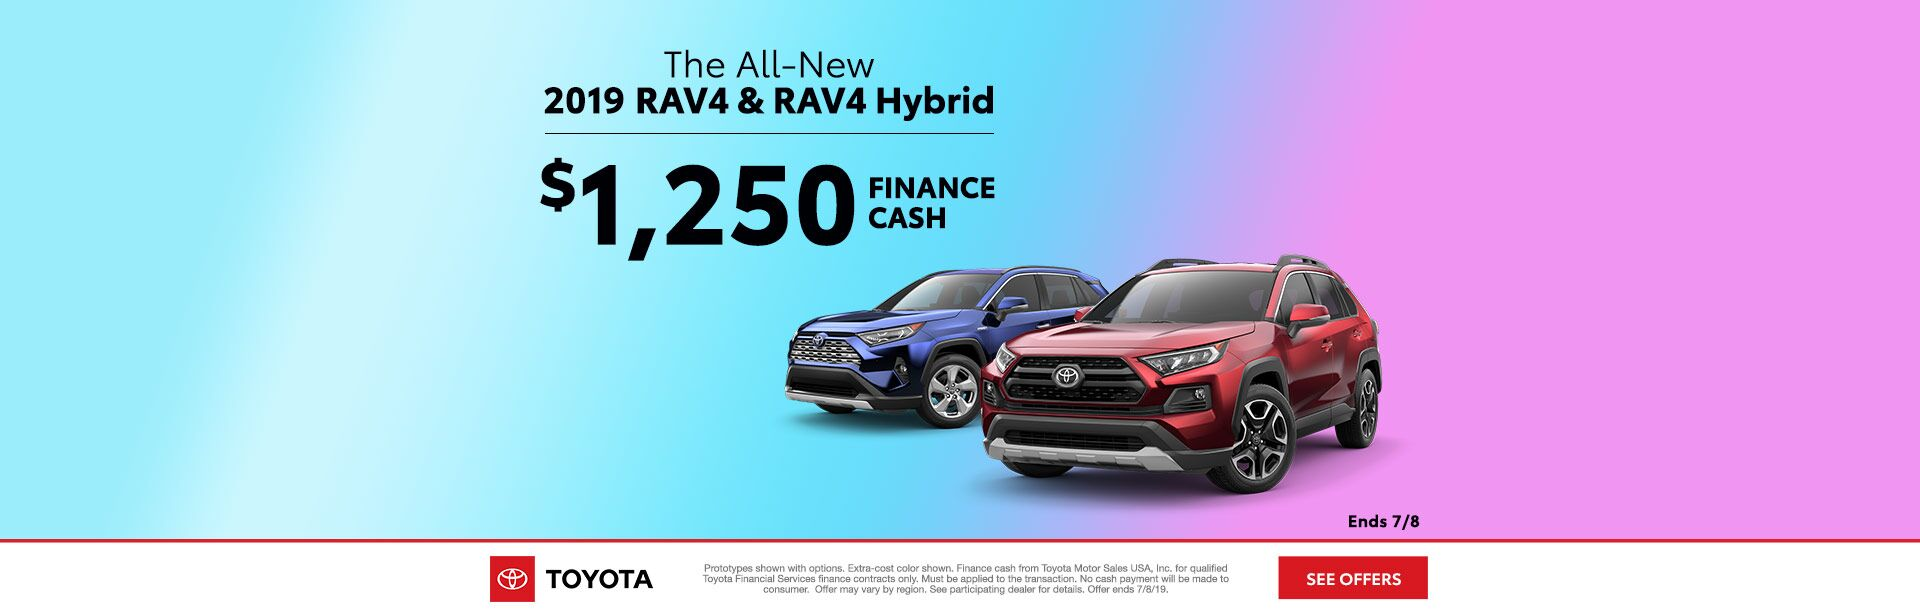 2019 June NYR Tier3 Rav4